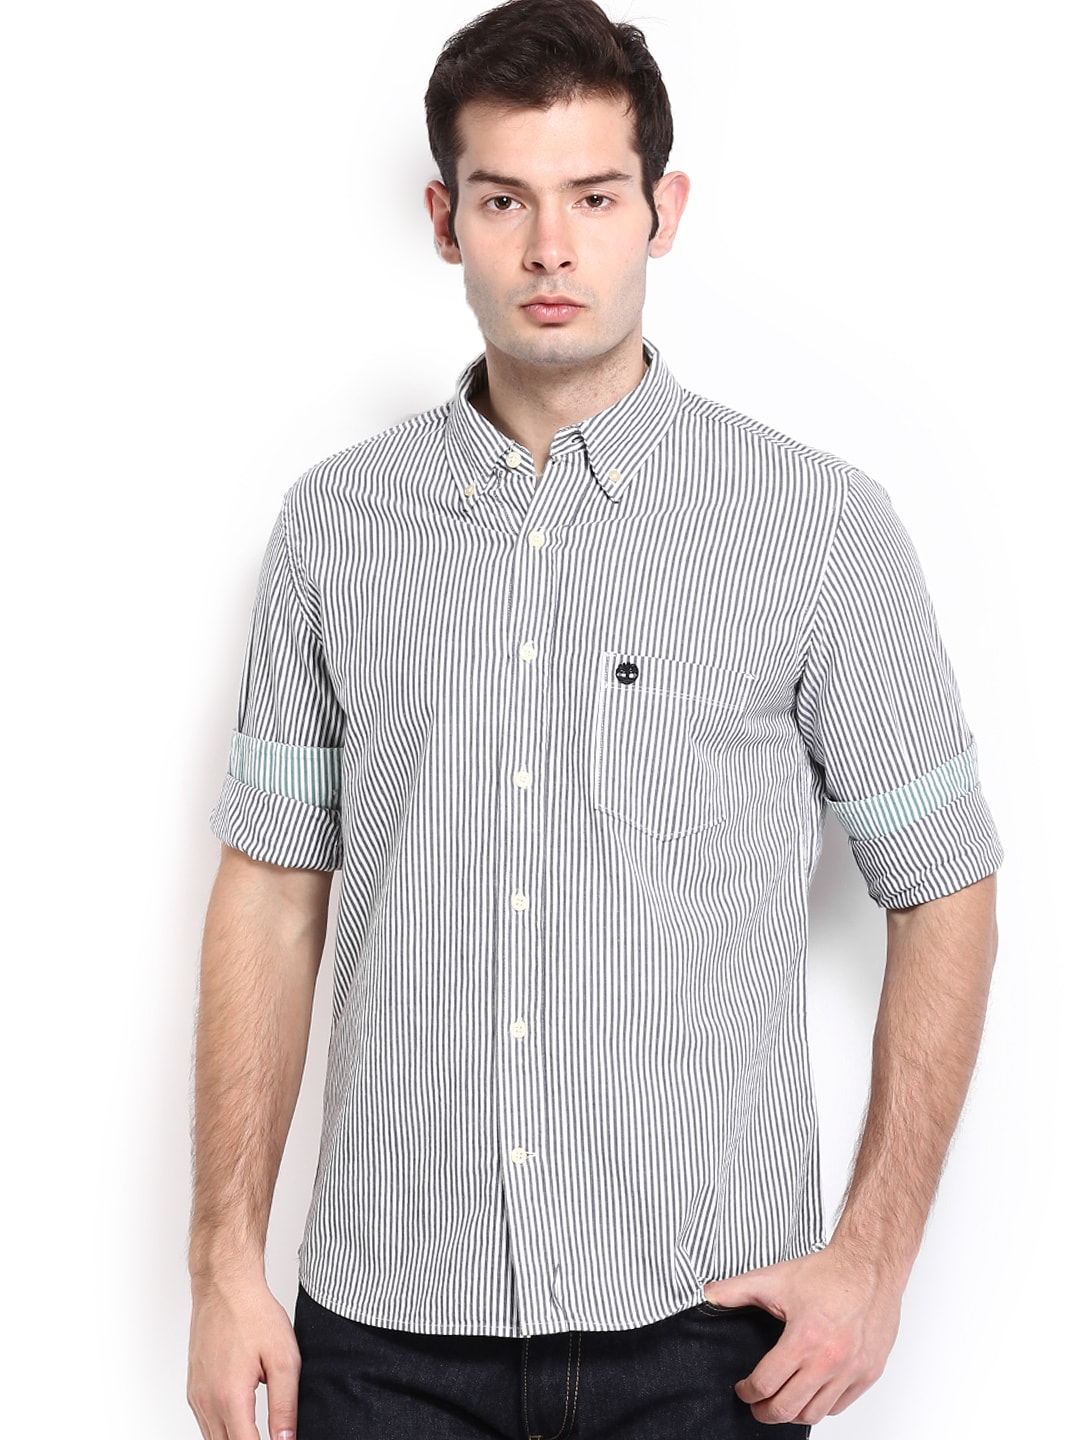 Timberland Timberland Men Grey & White Striped Slim Fit Smart-Casual Shirt (Multicolor)